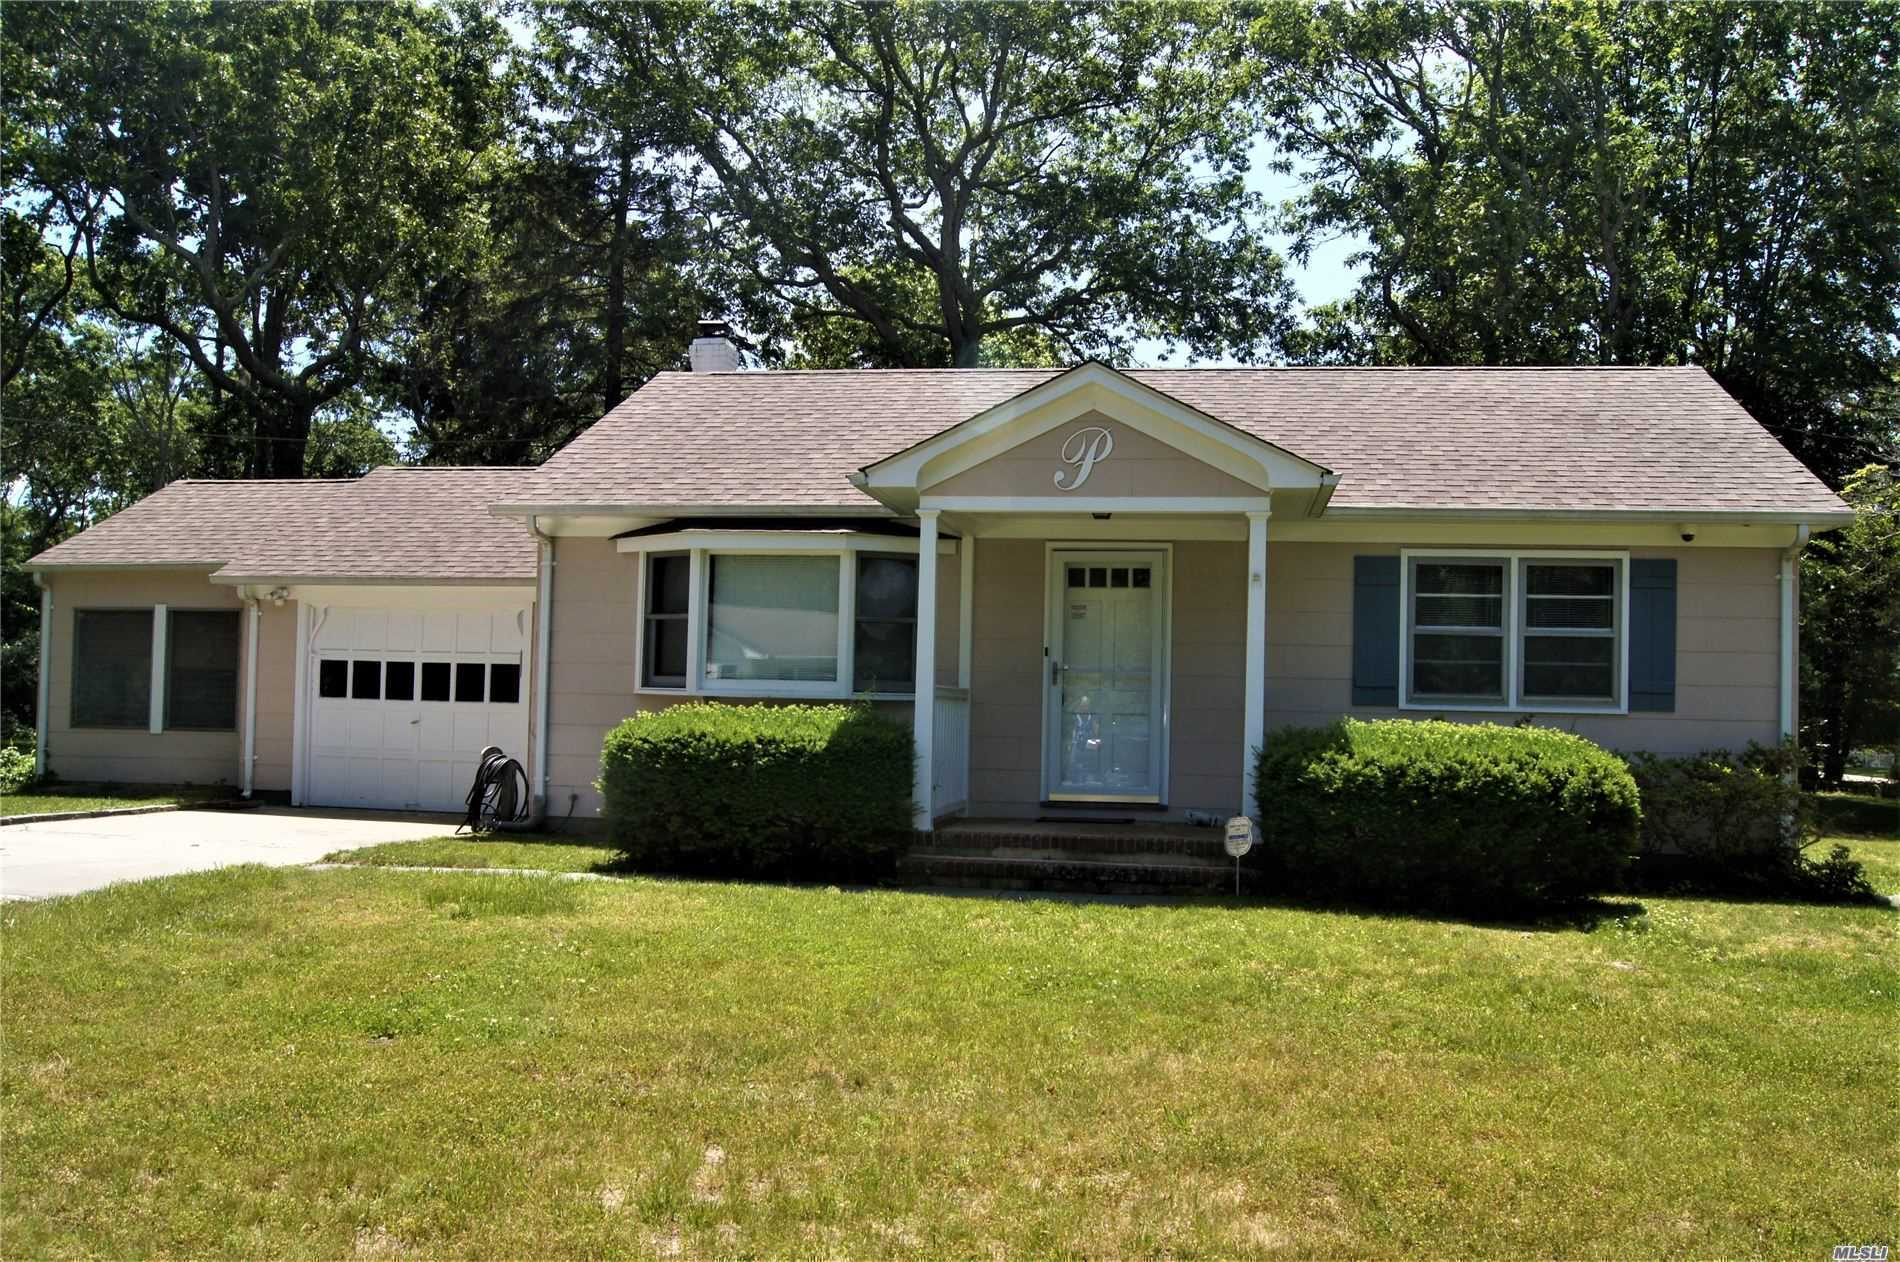 Photo of home for sale at 43 Donellan Rd, Hampton Bays NY